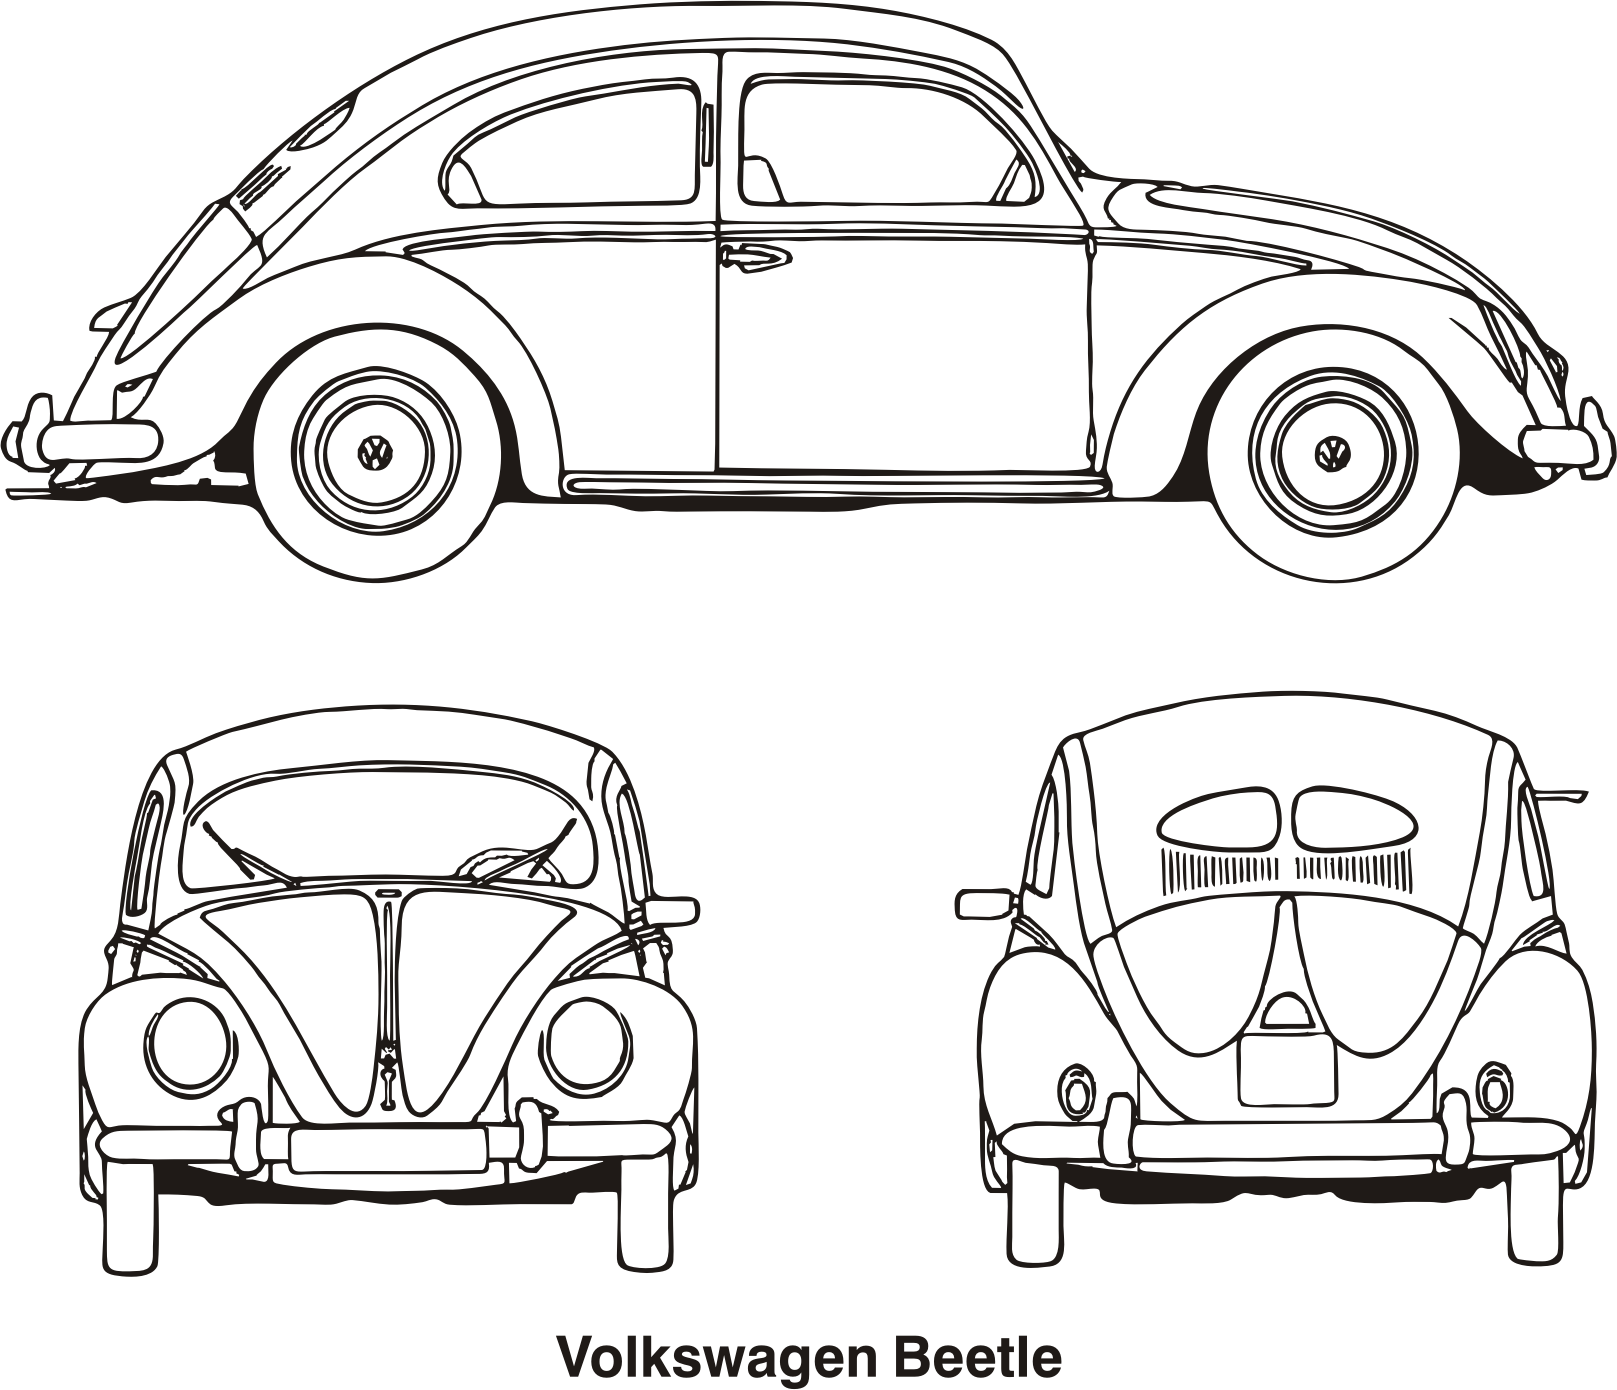 Volkswagen beetle year icons. Volkswagon drawing art clipart royalty free library